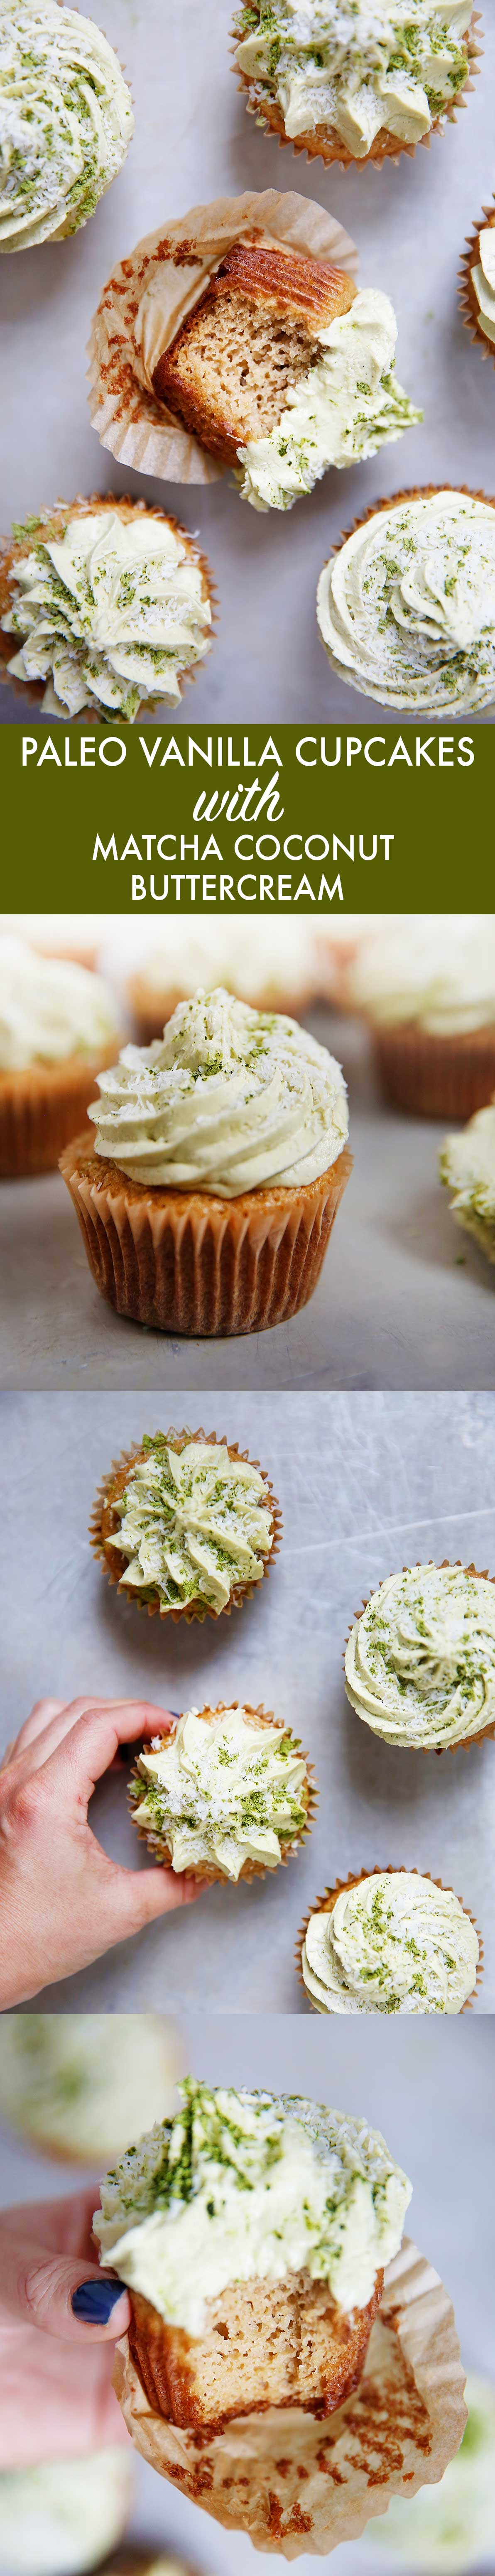 Paleo Cupcakes With Matcha Coconut Buttercream Frosting - Lexi's Clean Kitchen